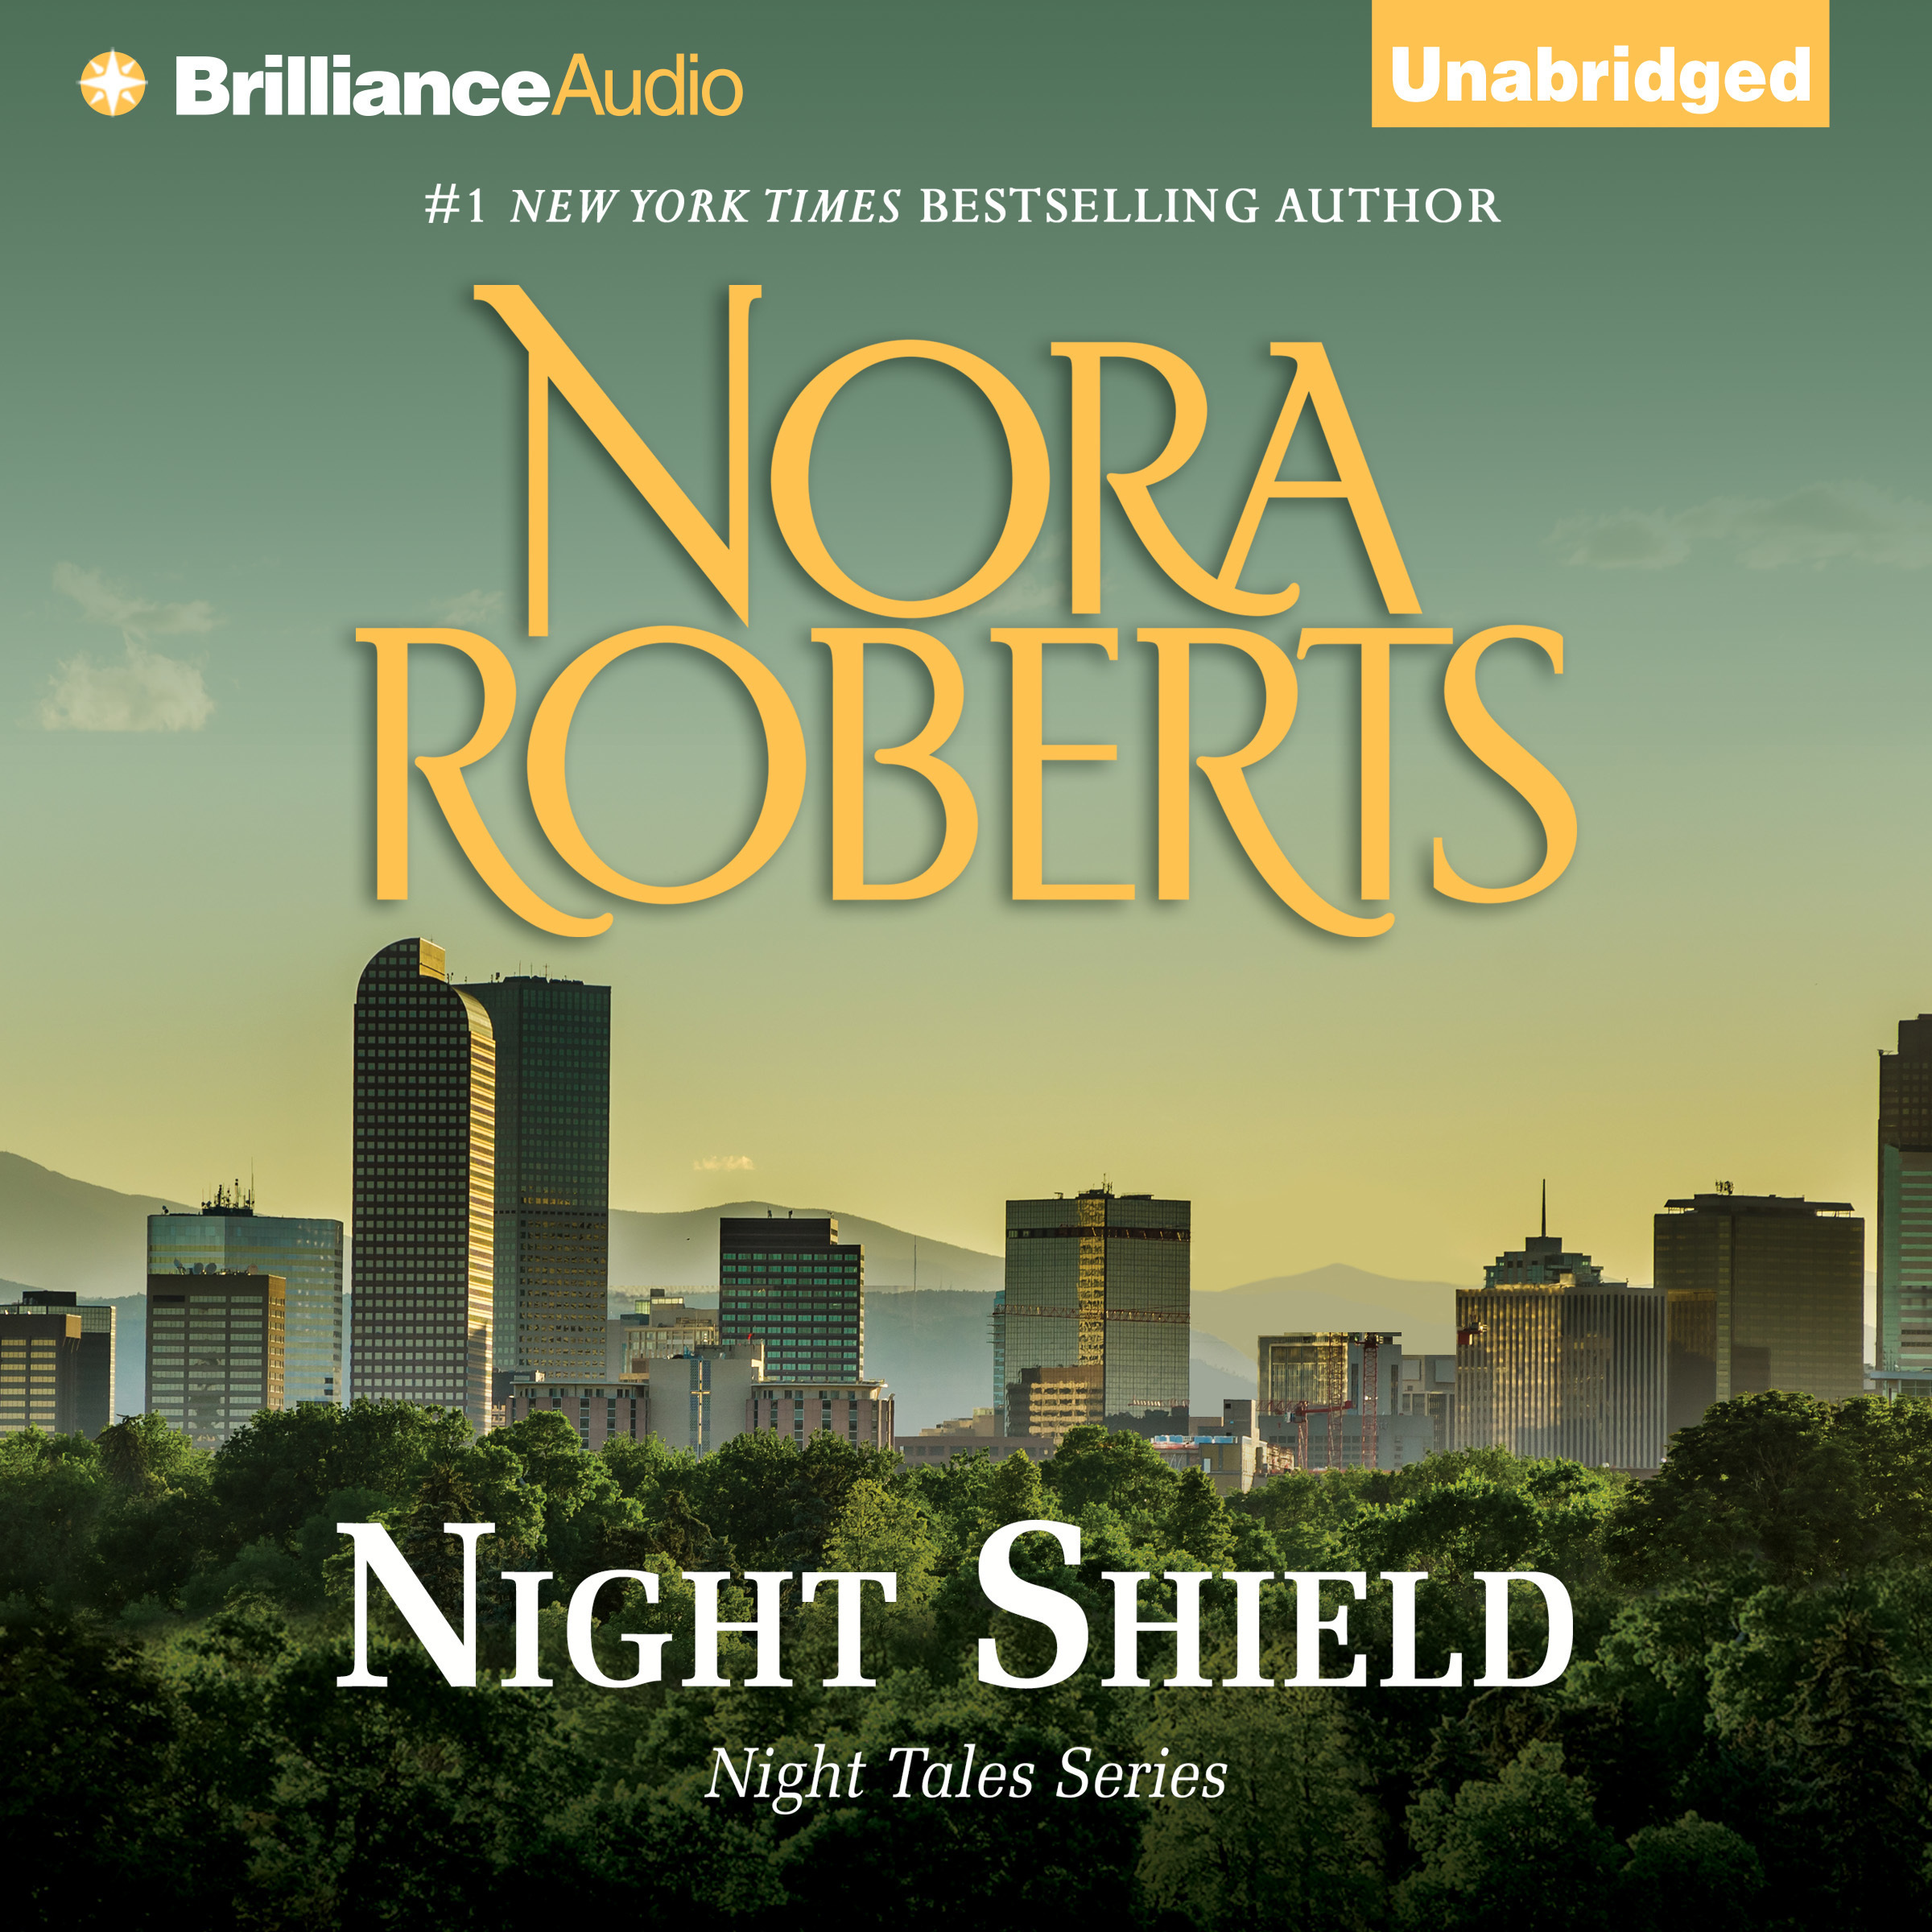 Roberts, Nora - Night Tales 05 - Night Shield